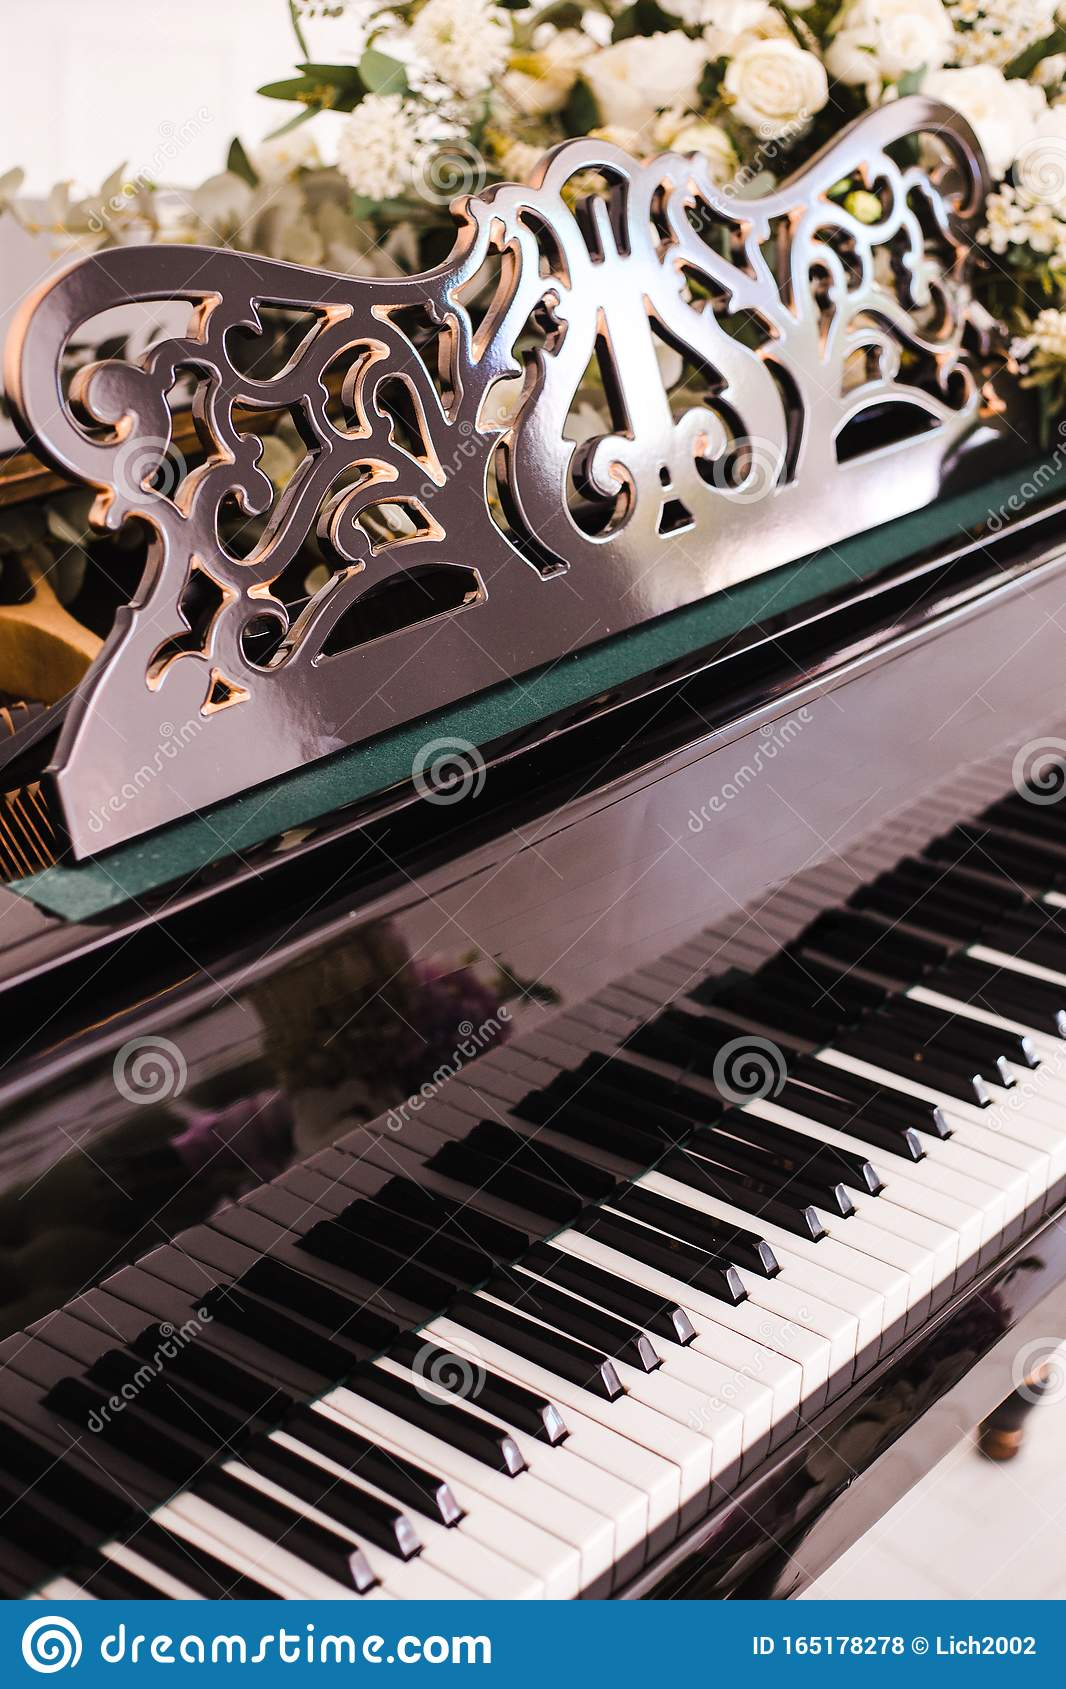 Piano With Open Keys Decorated With A Bouquet Of White ...